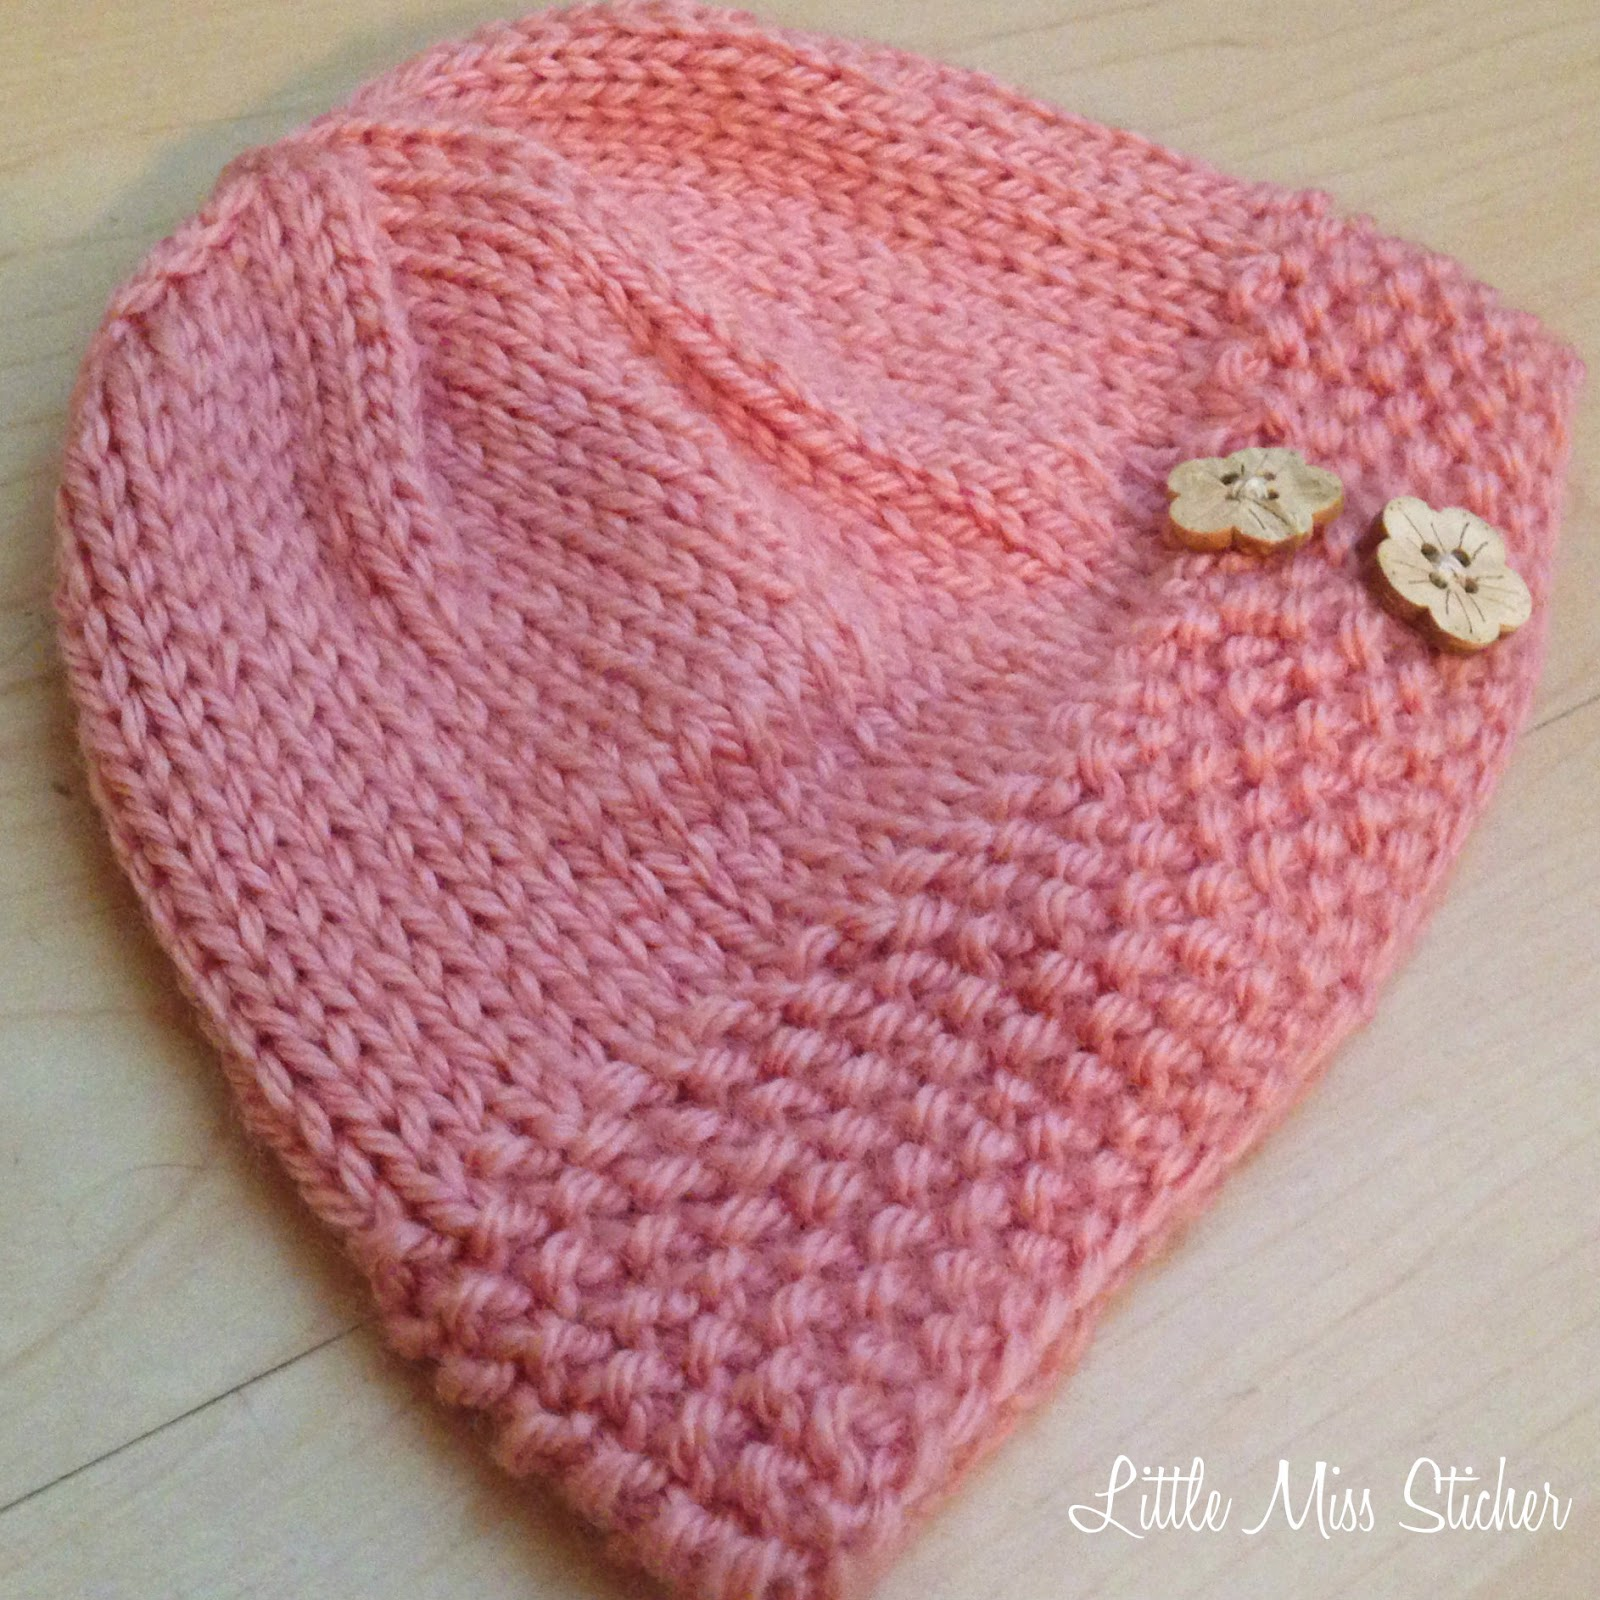 Free Knitting Pattern Childs Hat : Free Easy Knit Hat Pattern Search Results Calendar 2015